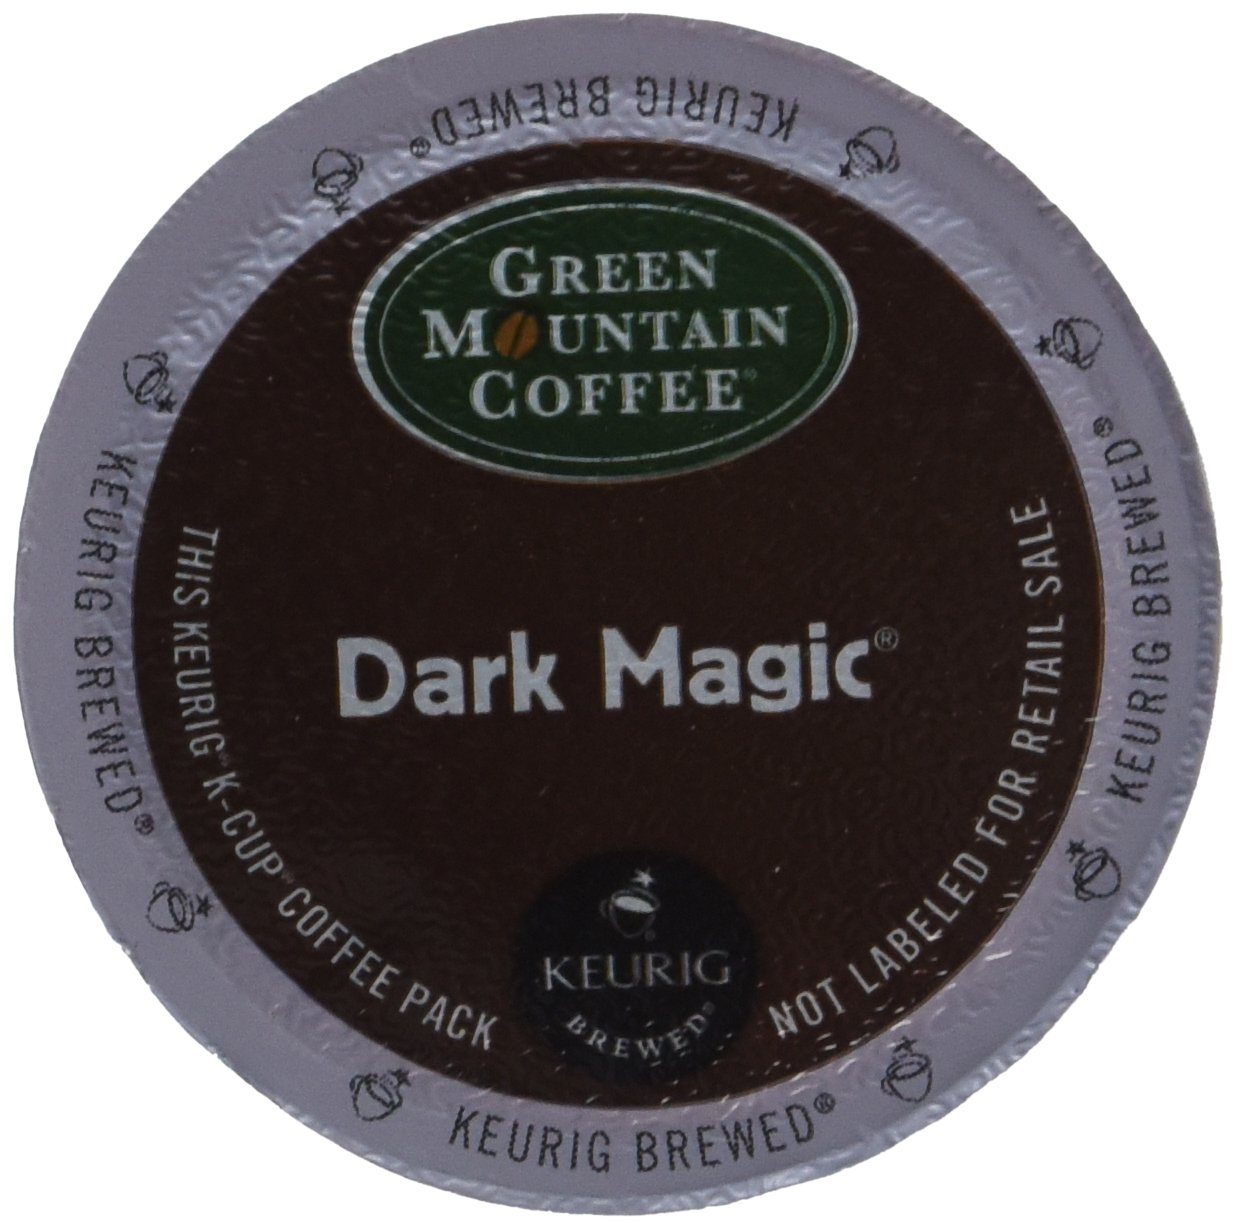 Green Mountain Coffee, Dark Magic (Extra Bold), 96-Count K-Cups for Keurig Brewers by Green Mountain Coffee